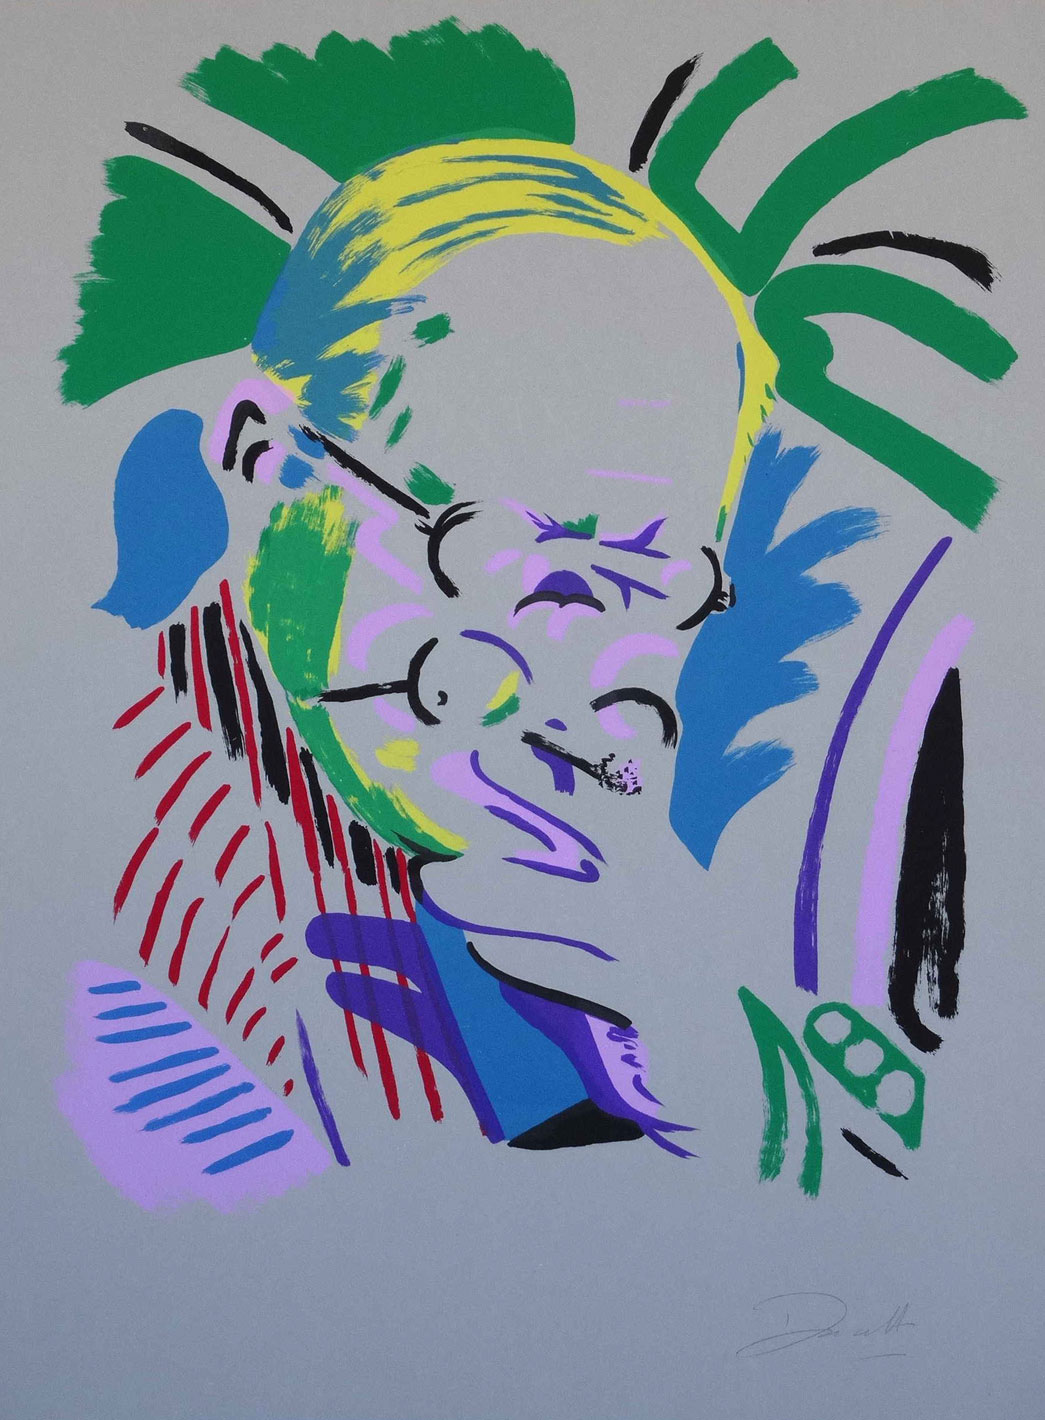 Hockney Takes a Breather, print by Darren Coffield